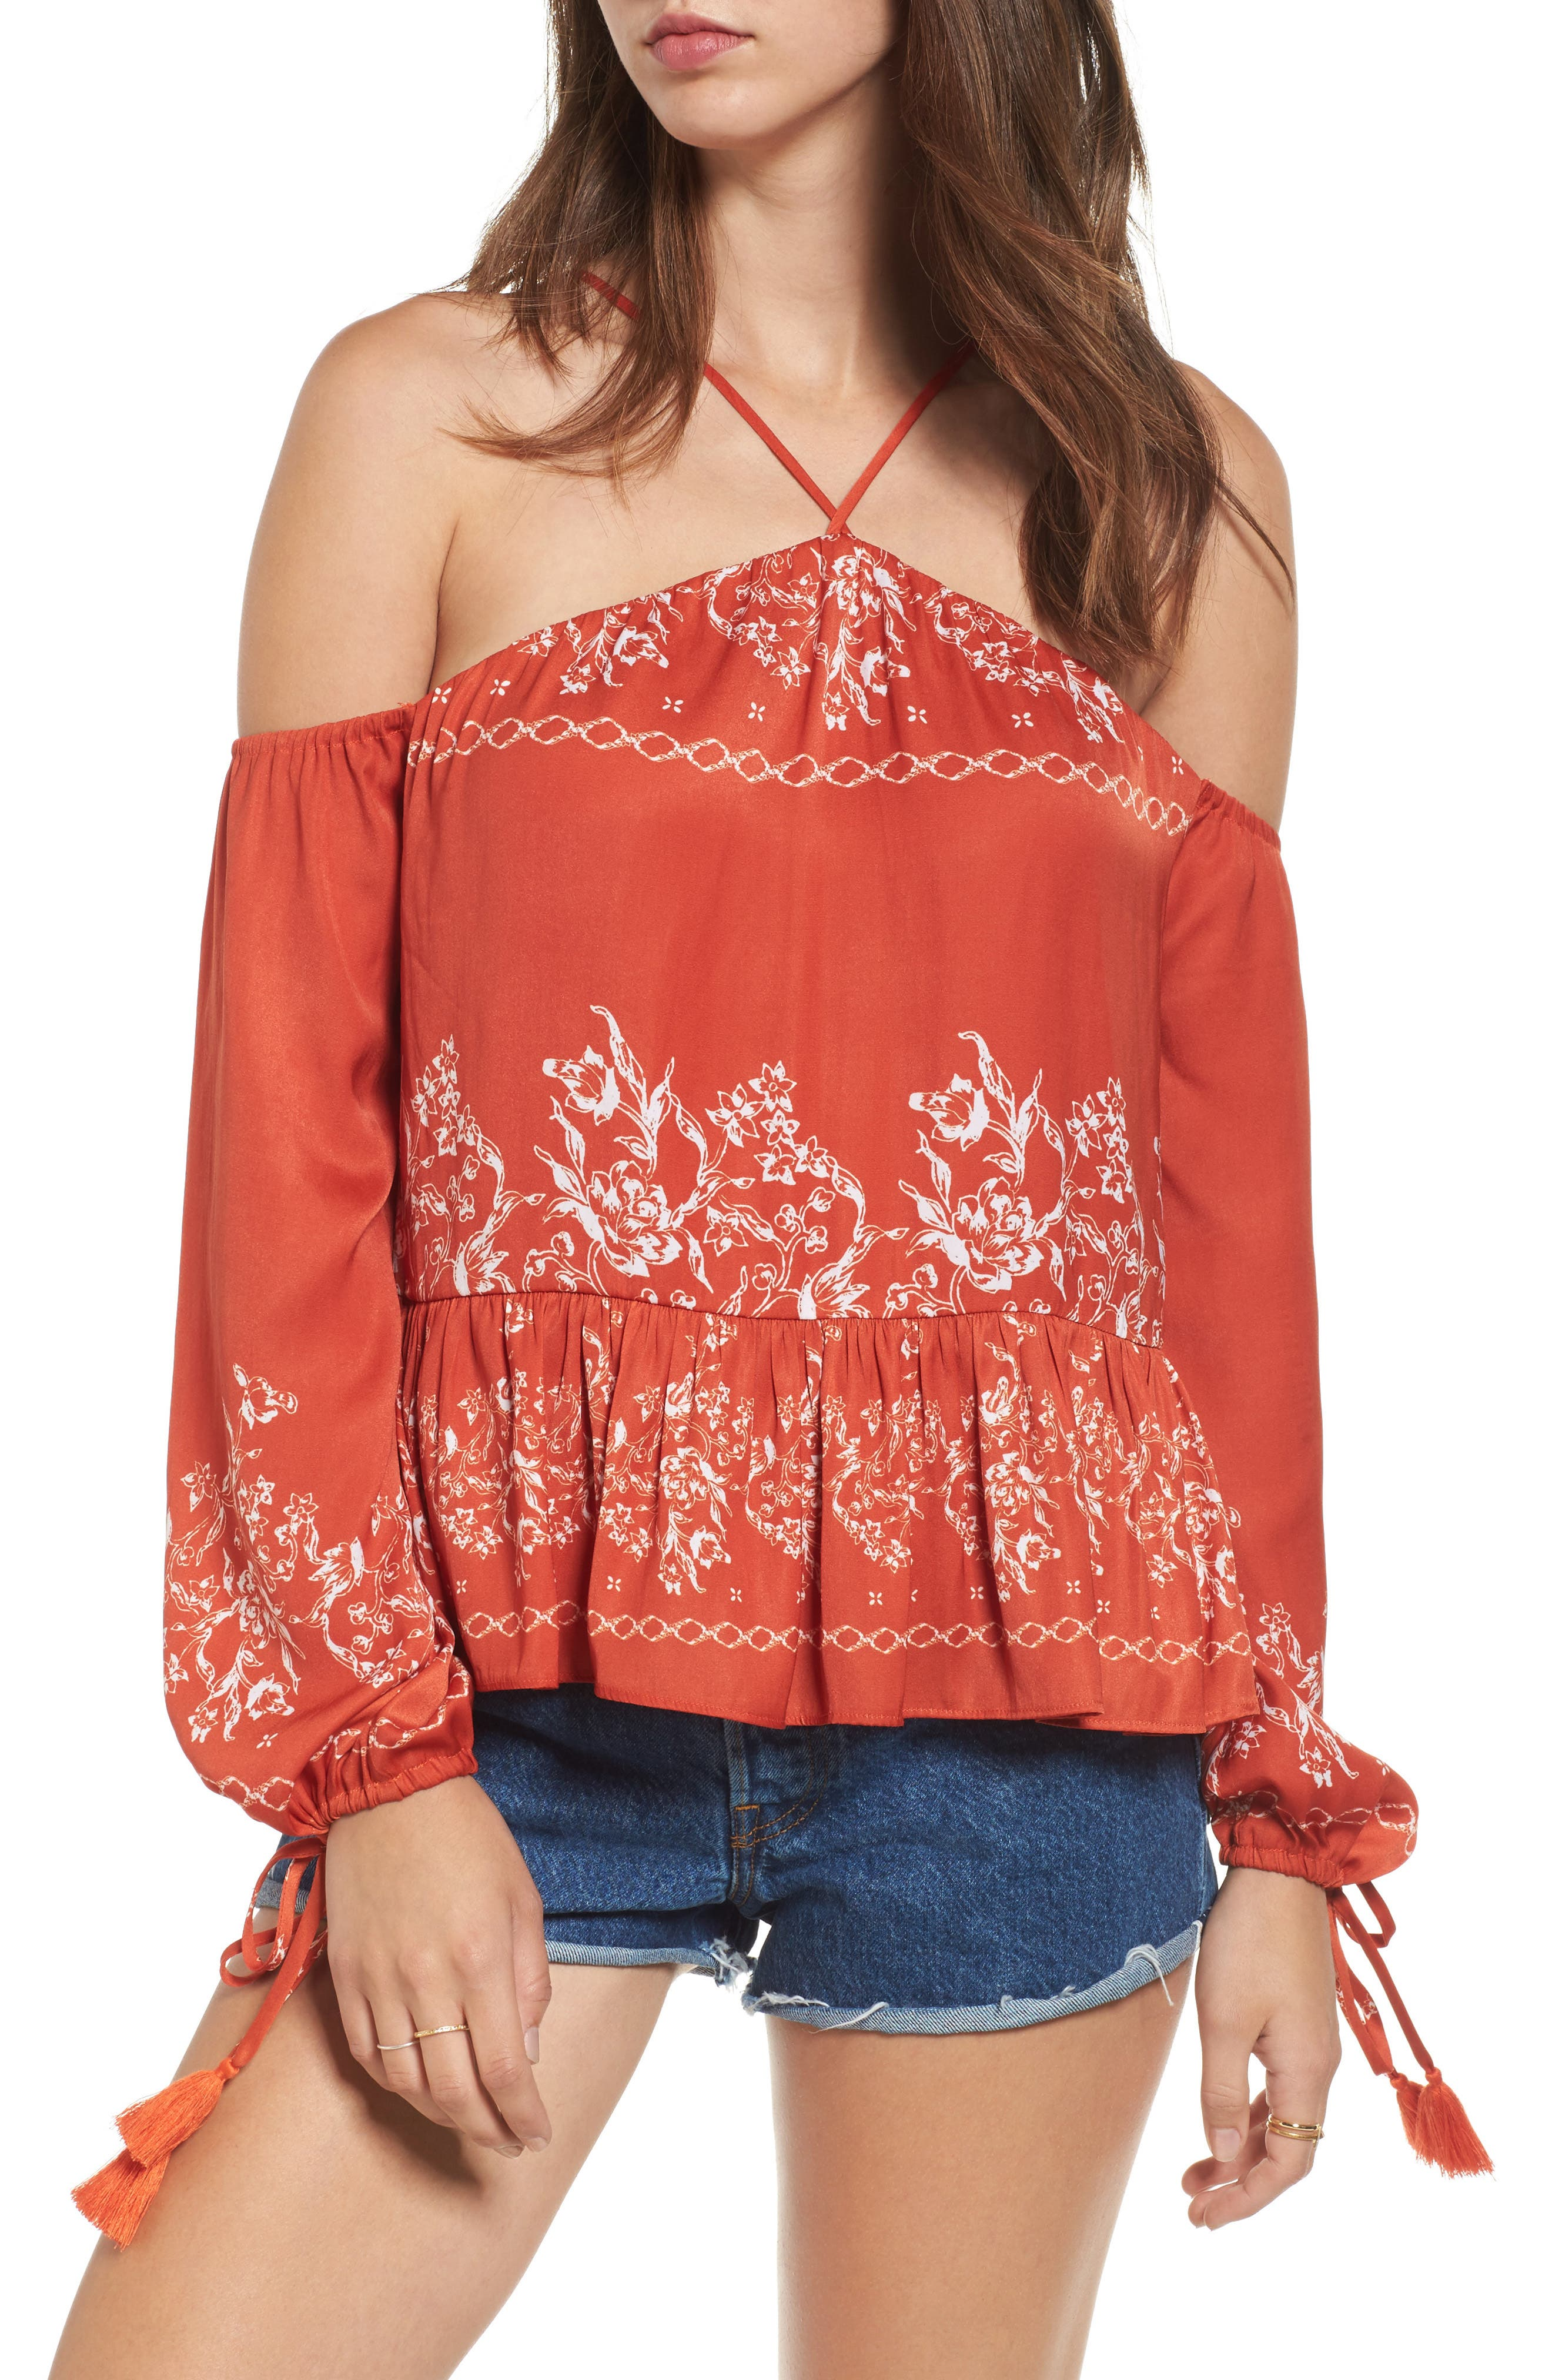 Alternate Image 1 Selected - Tularosa Syrah Floral Print Cold Shoulder Top